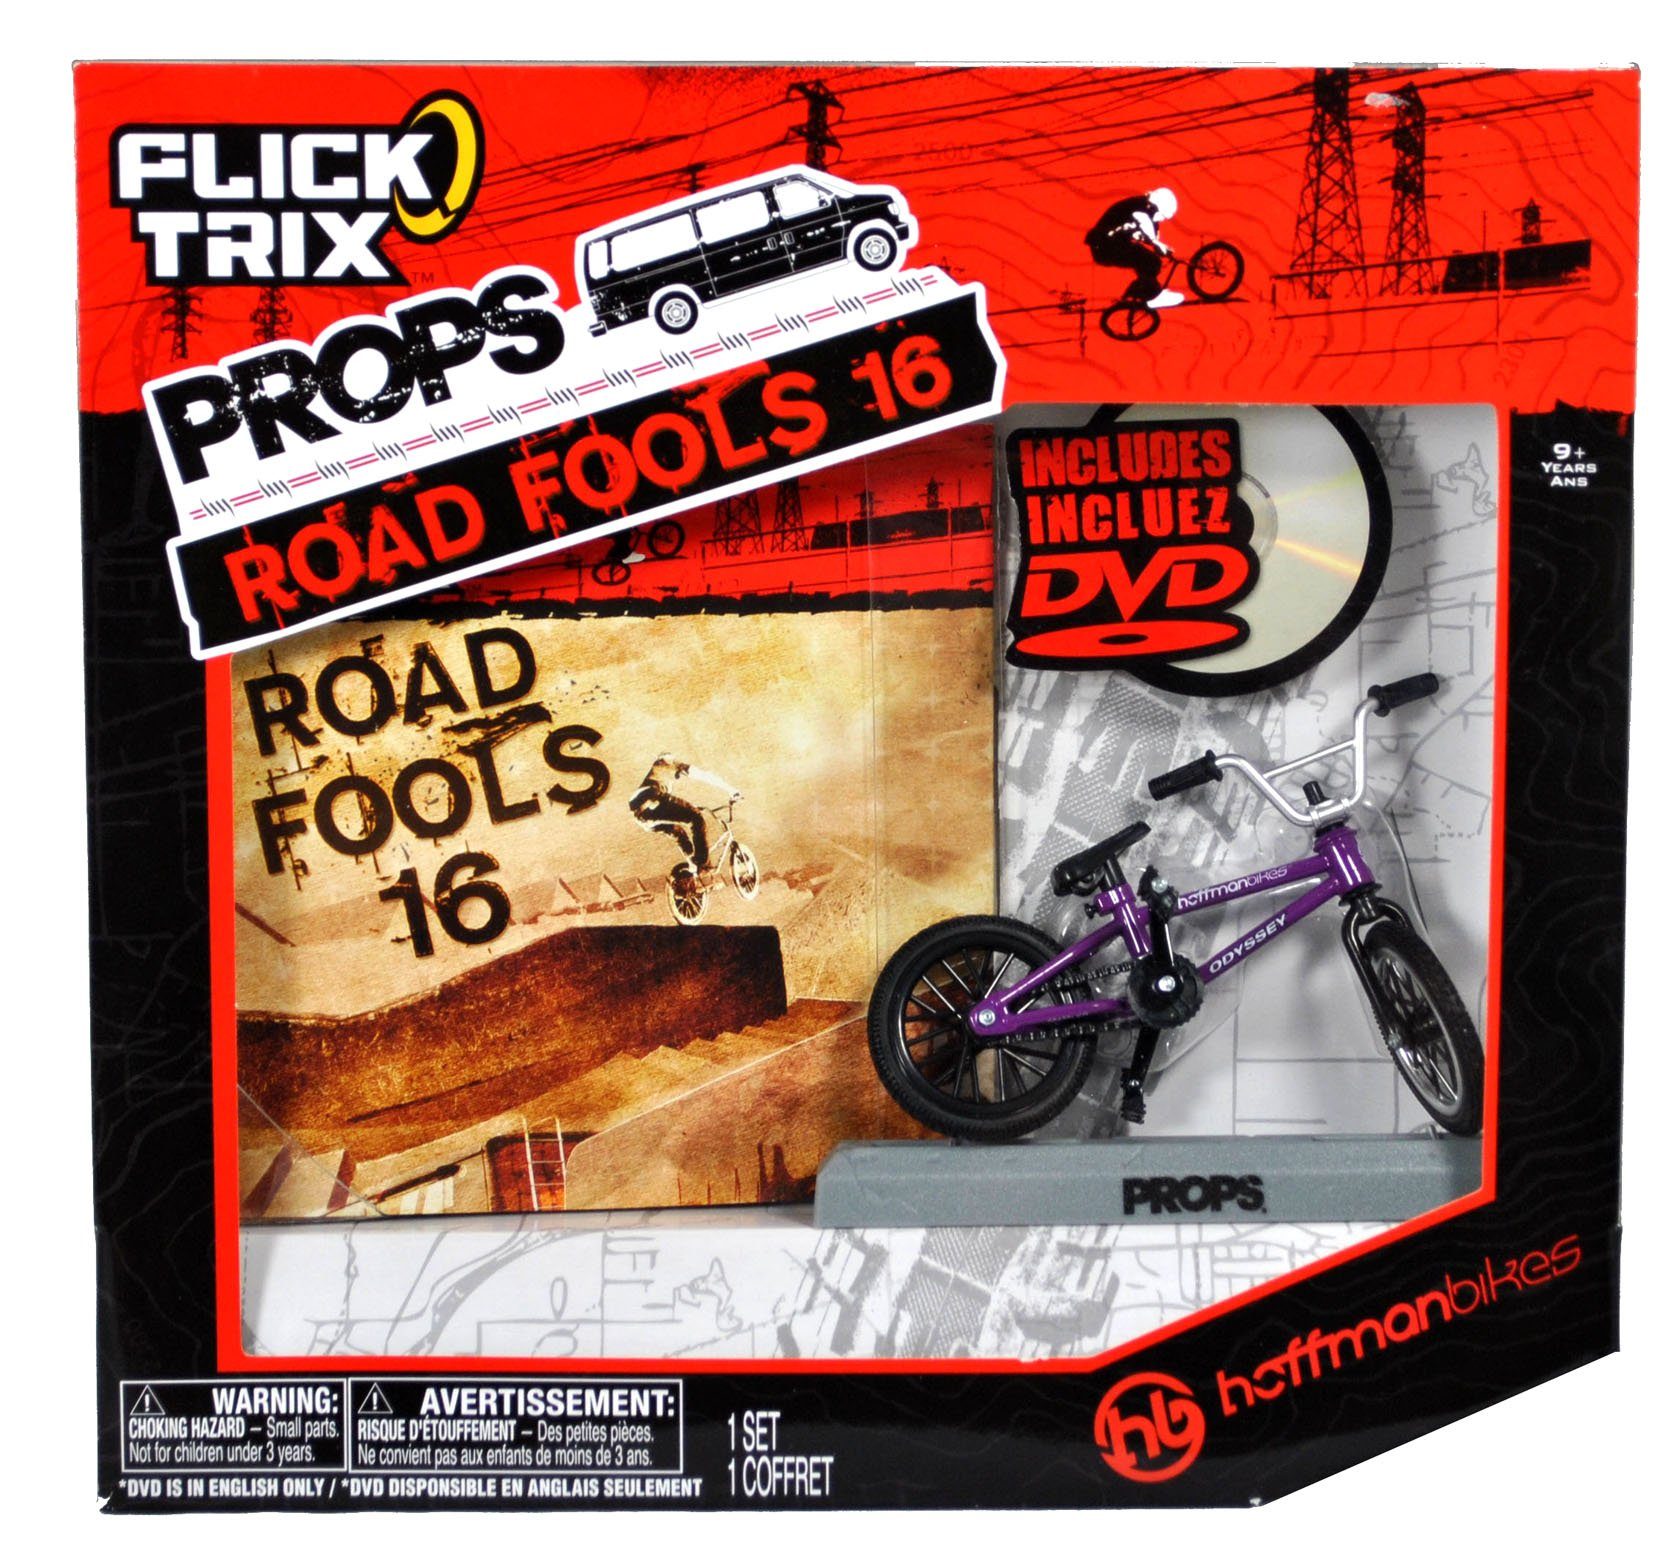 Spinmaster Flick Trix Fingerbike ''Real Bikes, Unreal Tricks'' BMX Bicycle Miniature Set - HOFFMAN BIKES with Display Base and DVD Props ''Road Fools 16'' by Flick Trix (Image #2)